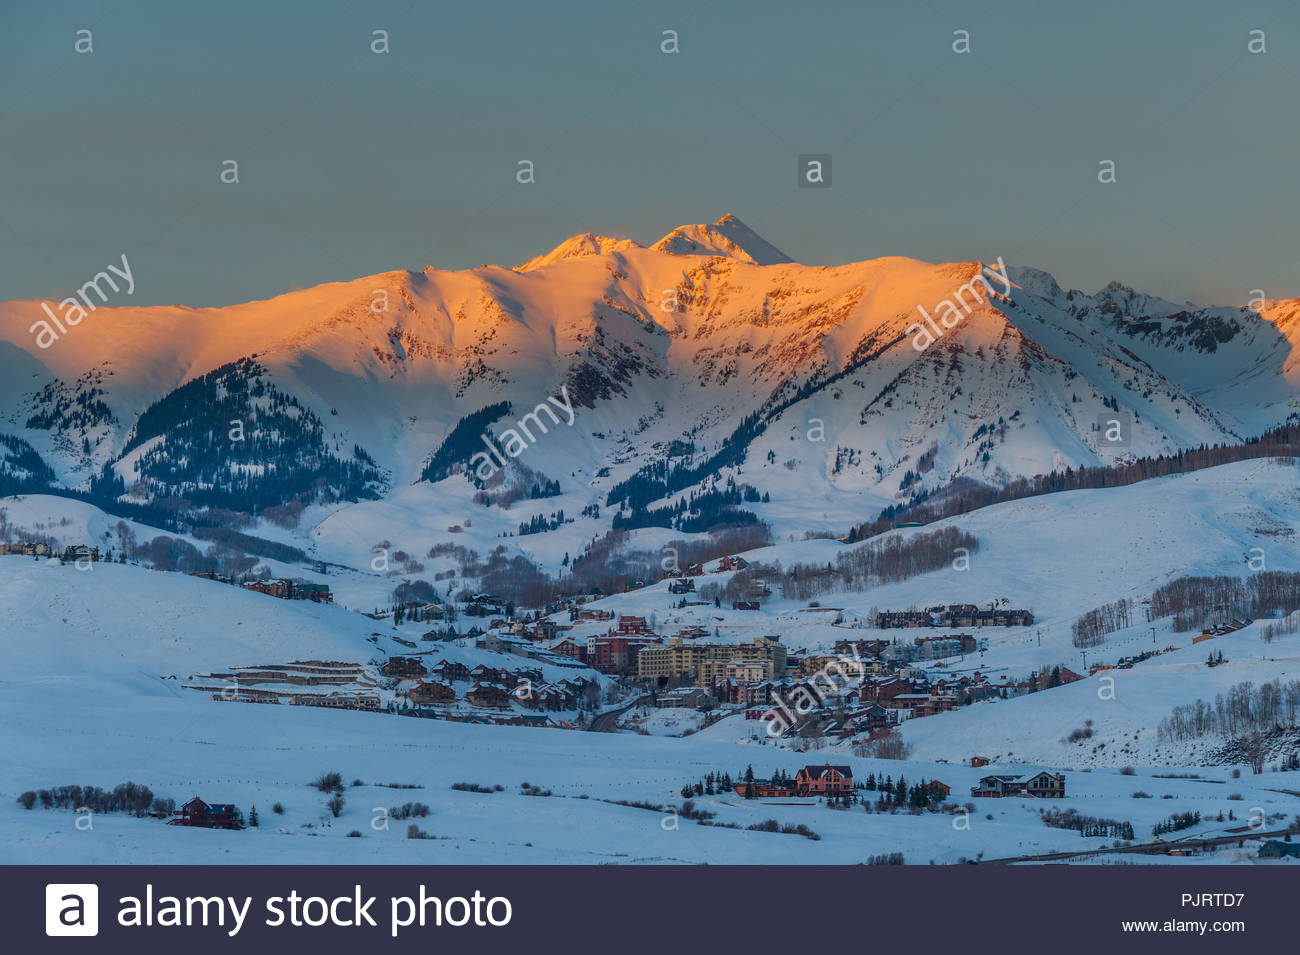 Sunset light called alpenglow on Whiterock Mountain towering over the ski town of Mount Crested Butte, Colorado - Stock Image